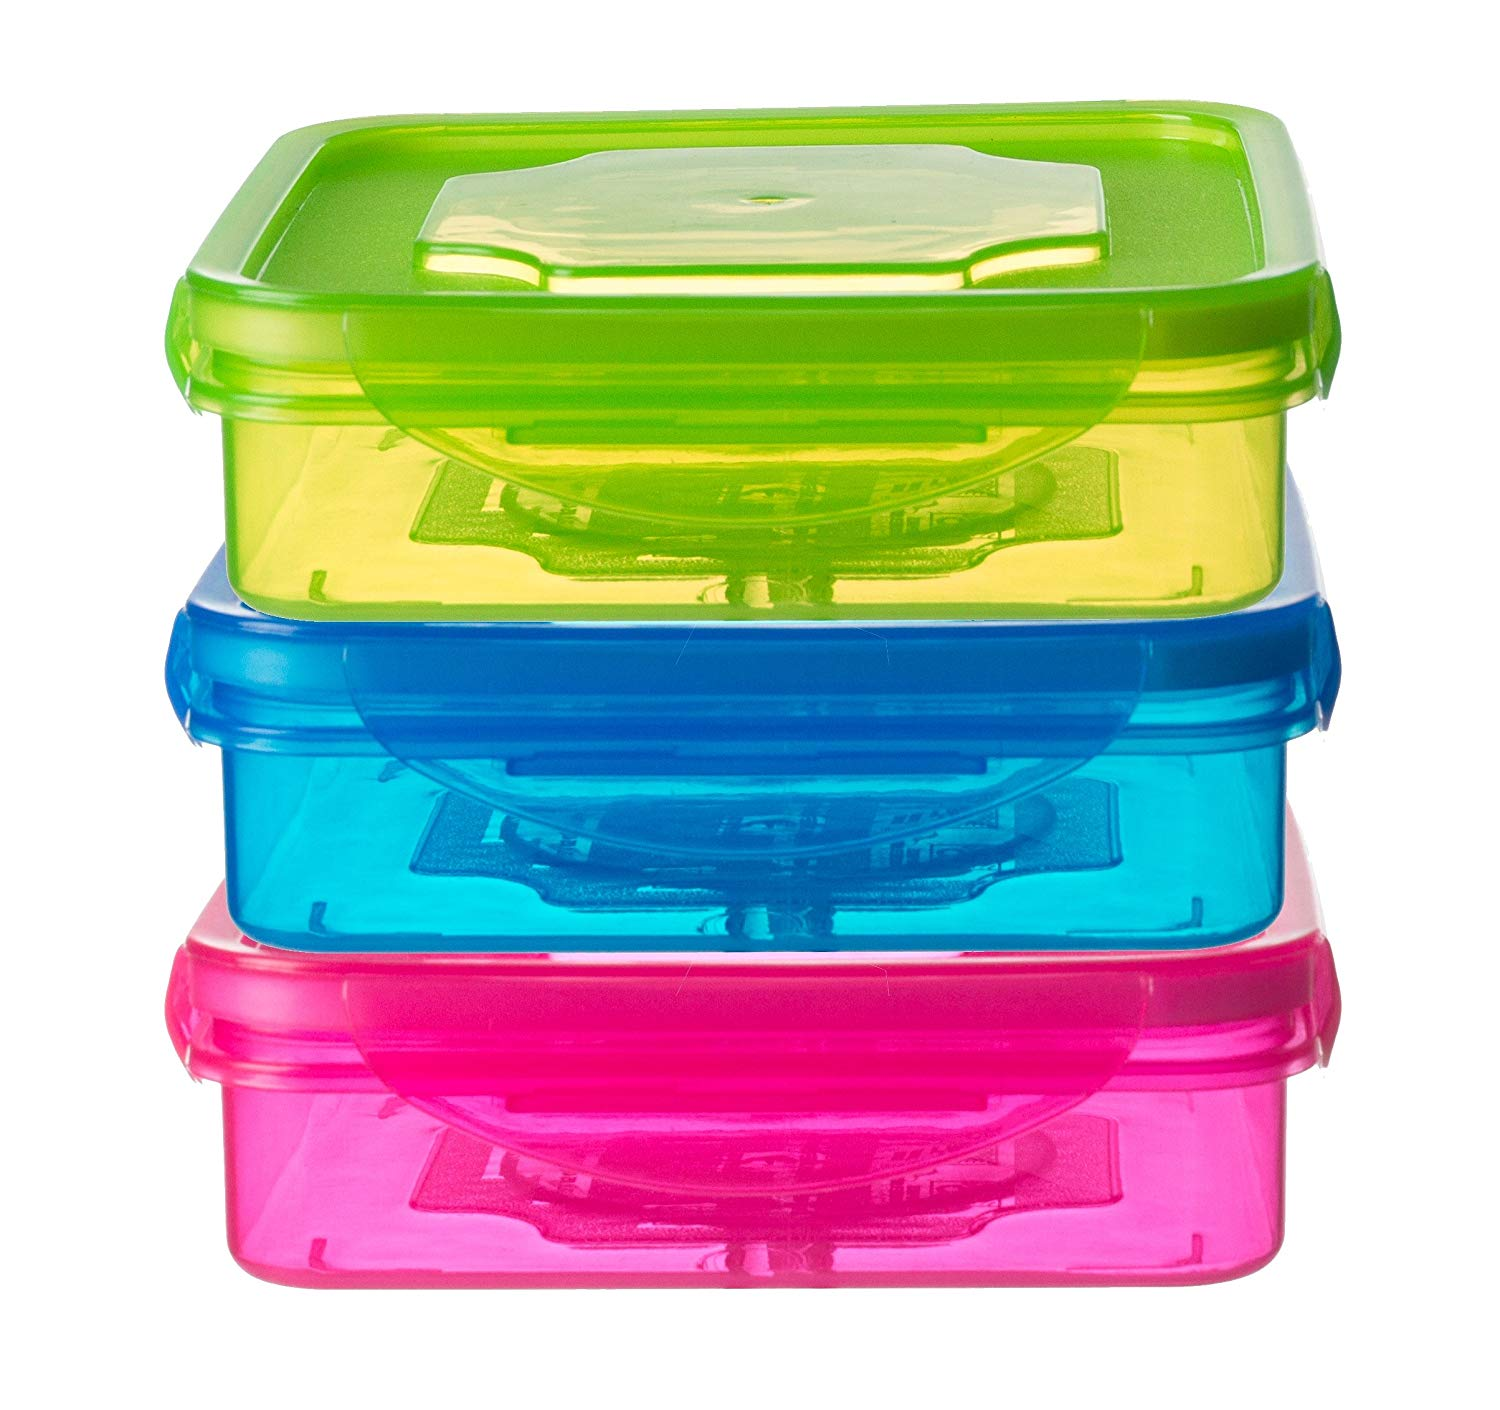 Set of 3 Sandwich Container for Lunch Boxes - Sandwich Box For Kids & Adults (Multi Color)